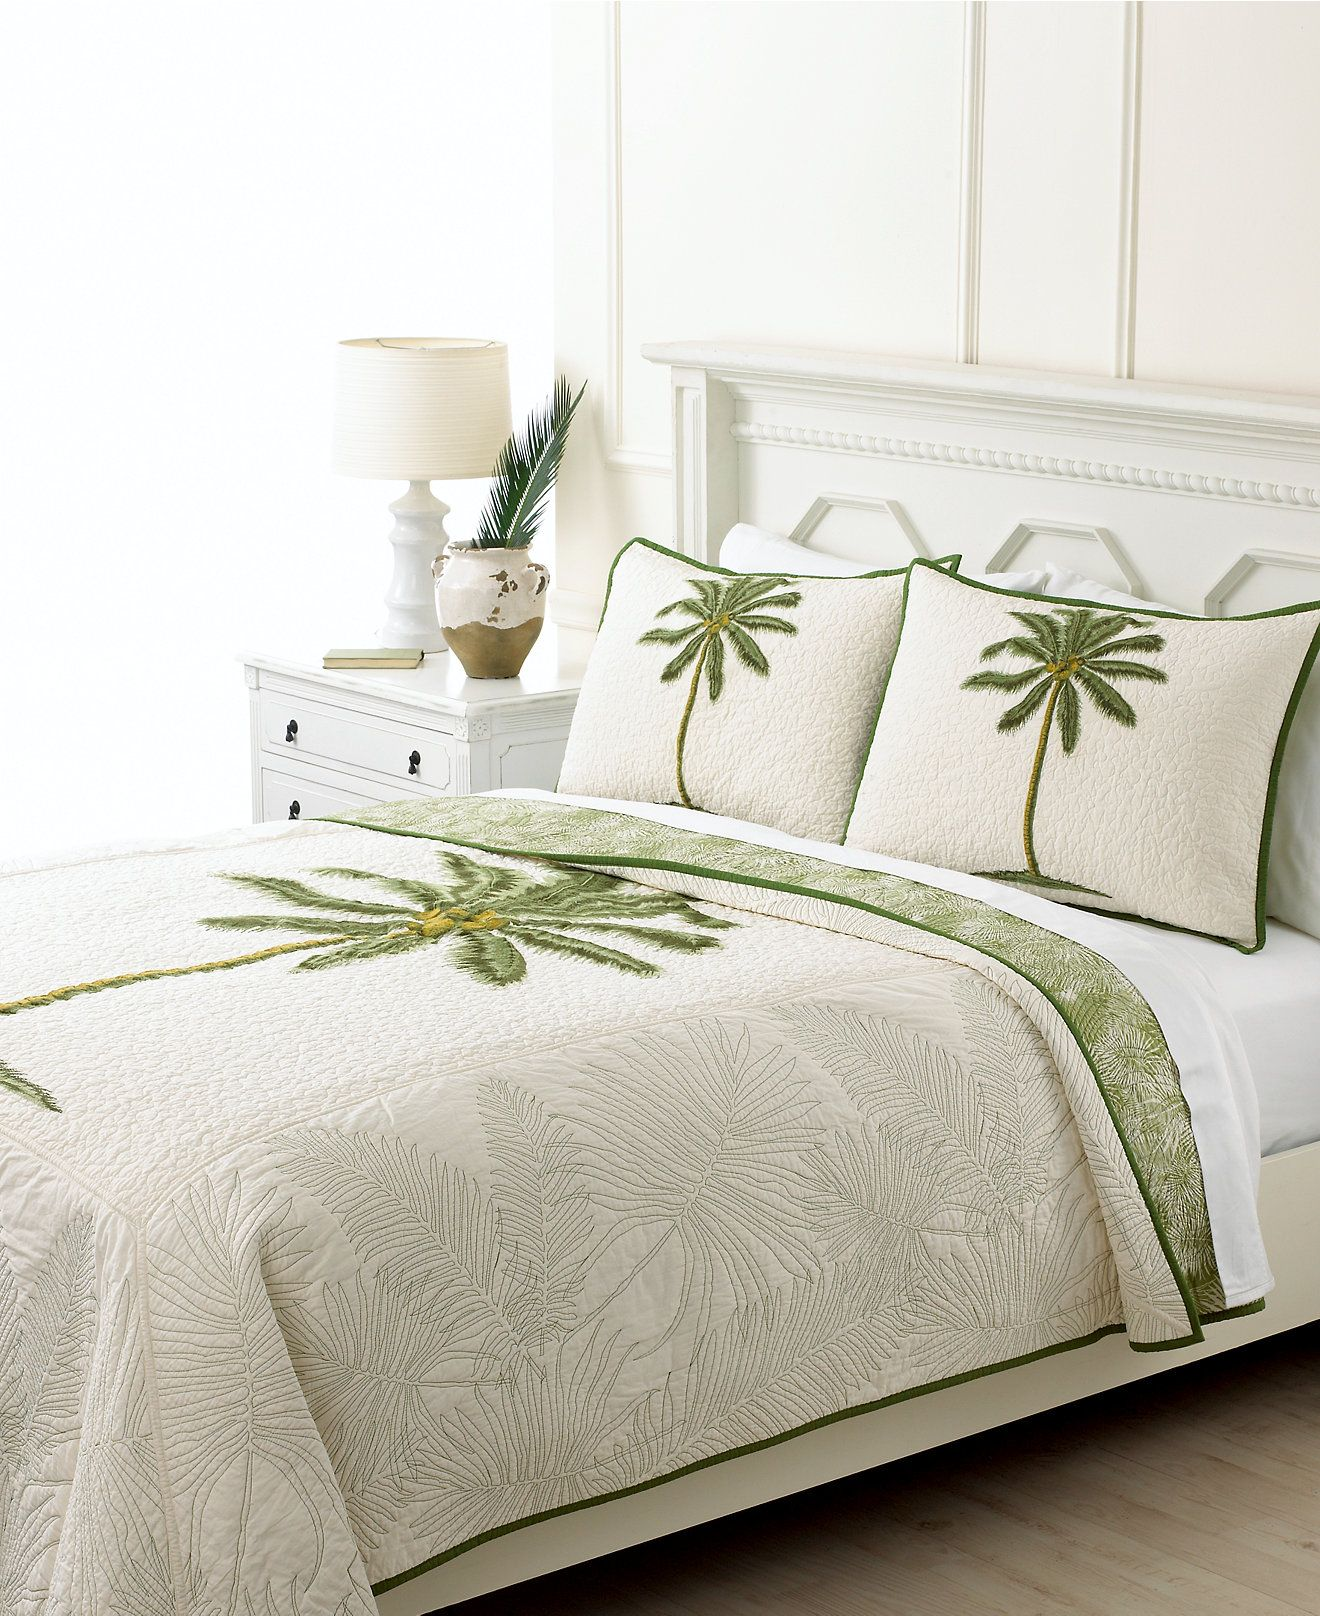 Martha Stewart Collection Coconut Palm Quilts Quilts Bedspreads Bed Bath Macy 39 S